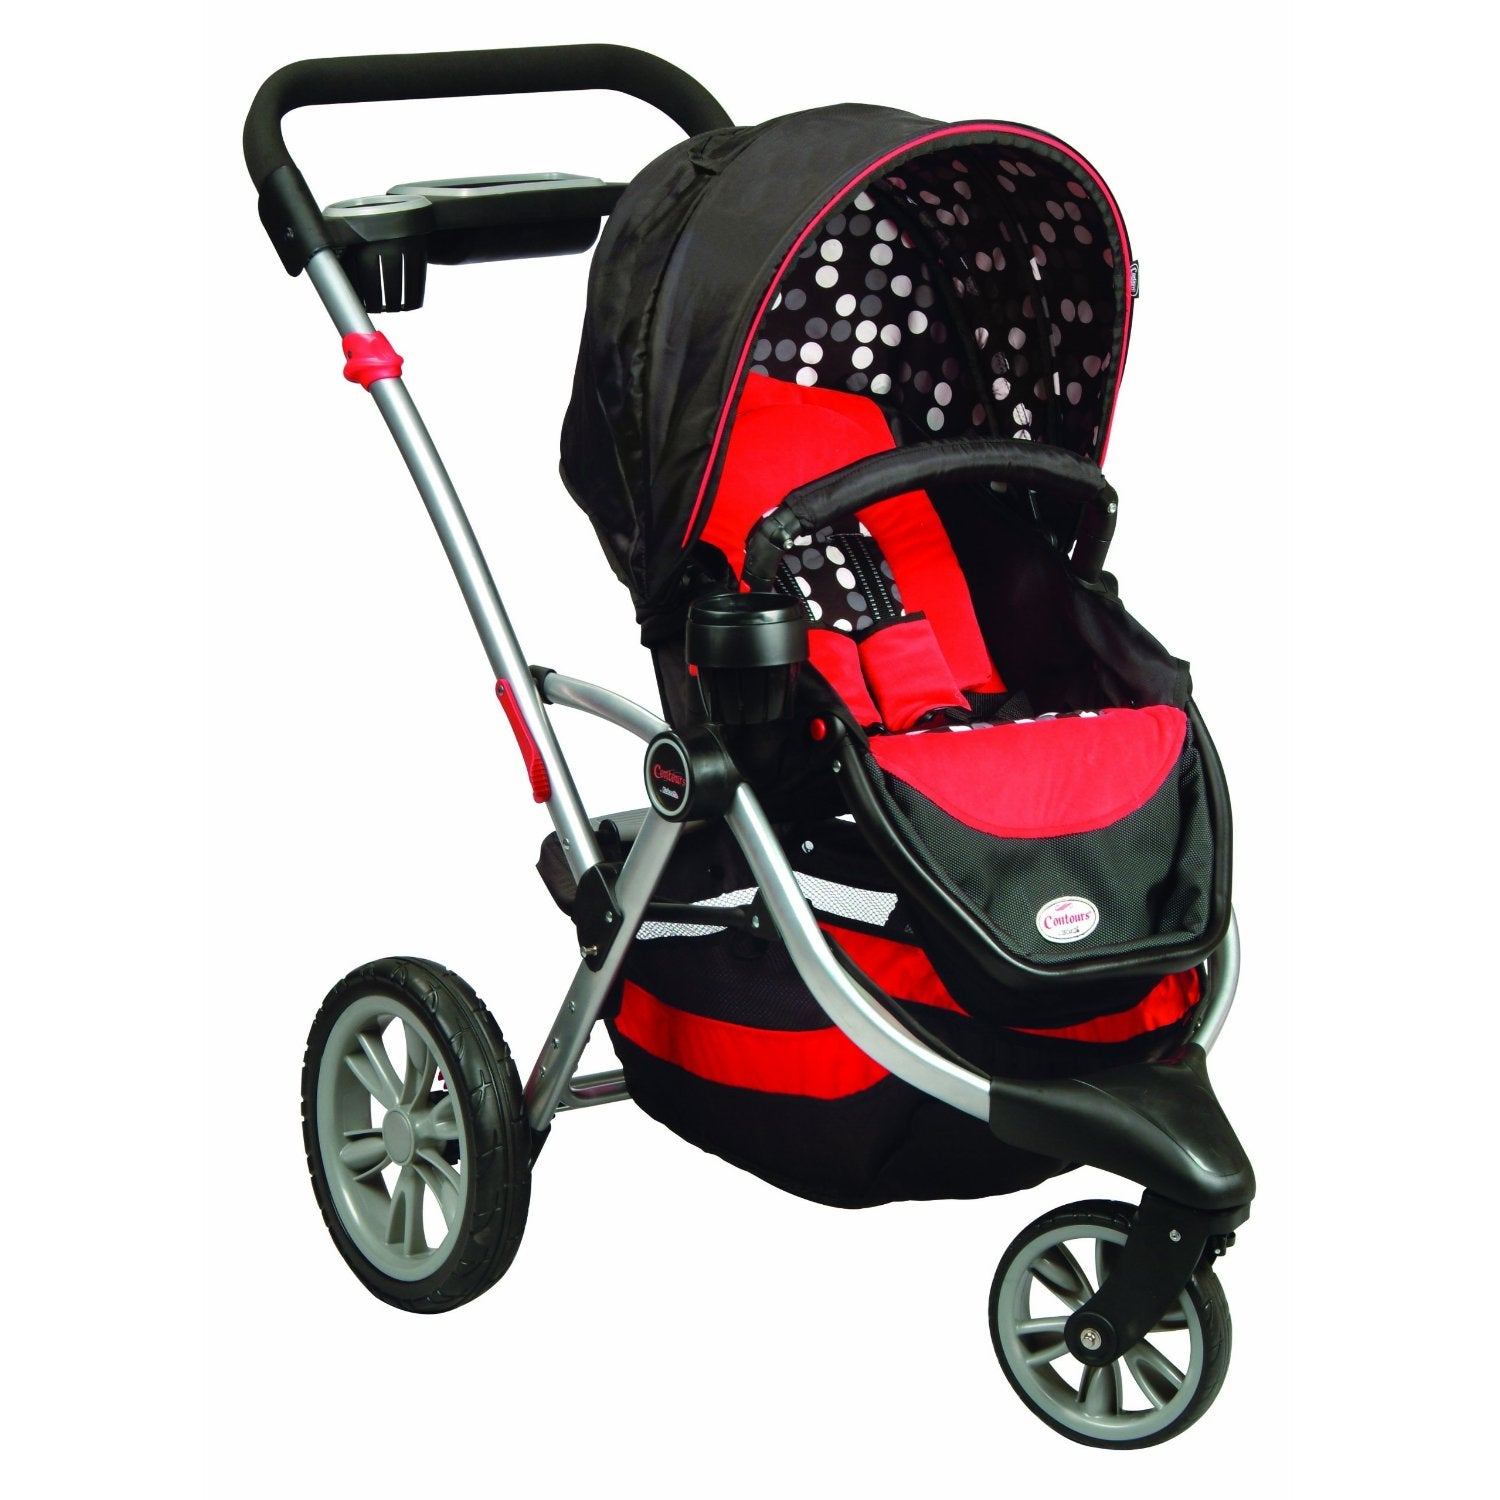 Stroller, Searching For Affordable Baby Strollers Can Be A Fun